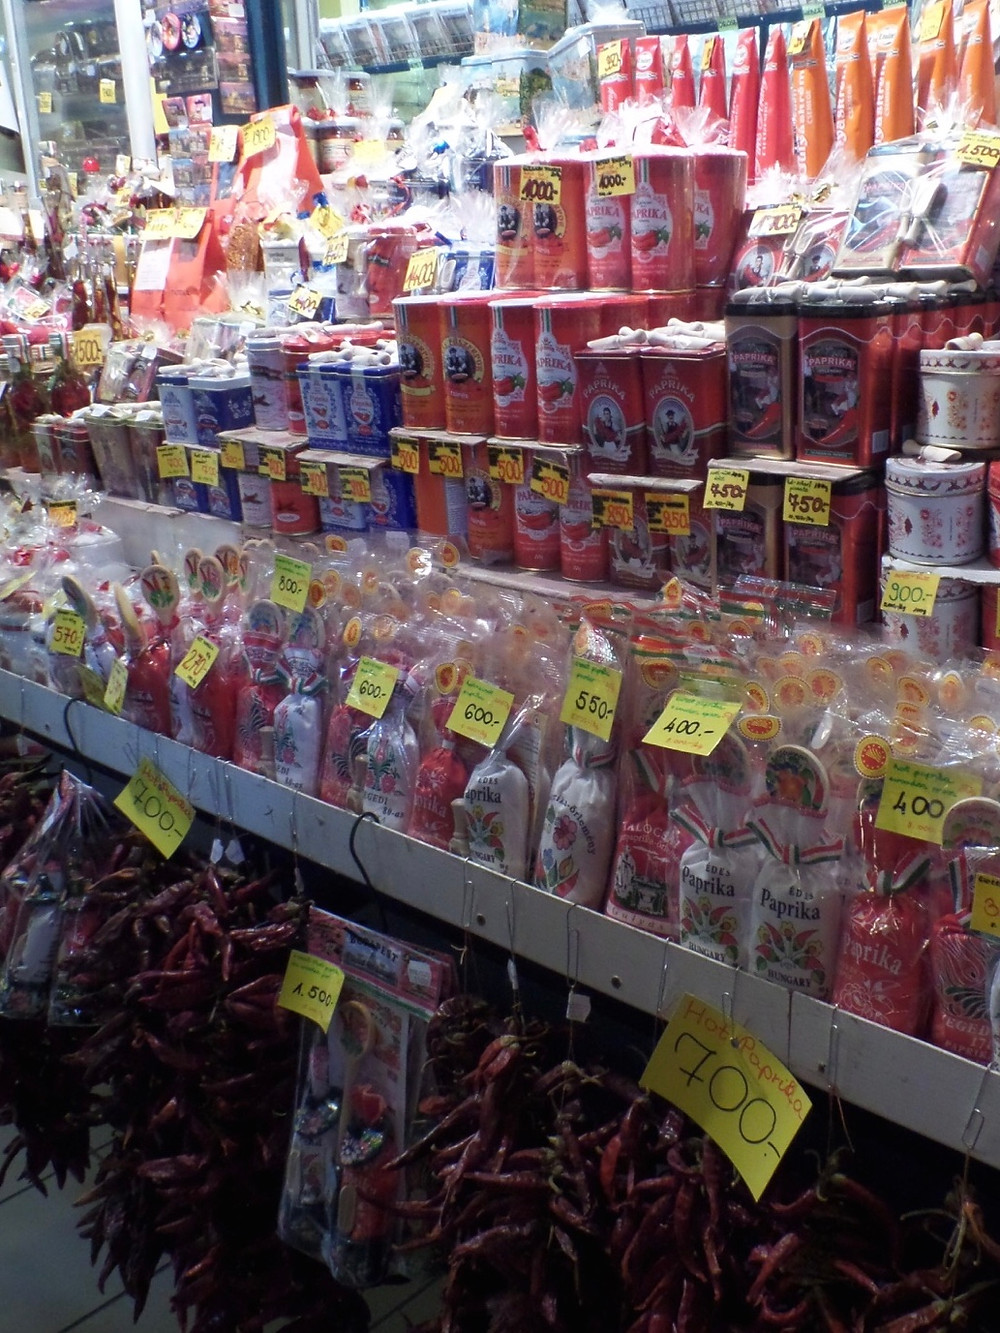 Paprika sold at a market in Hungary